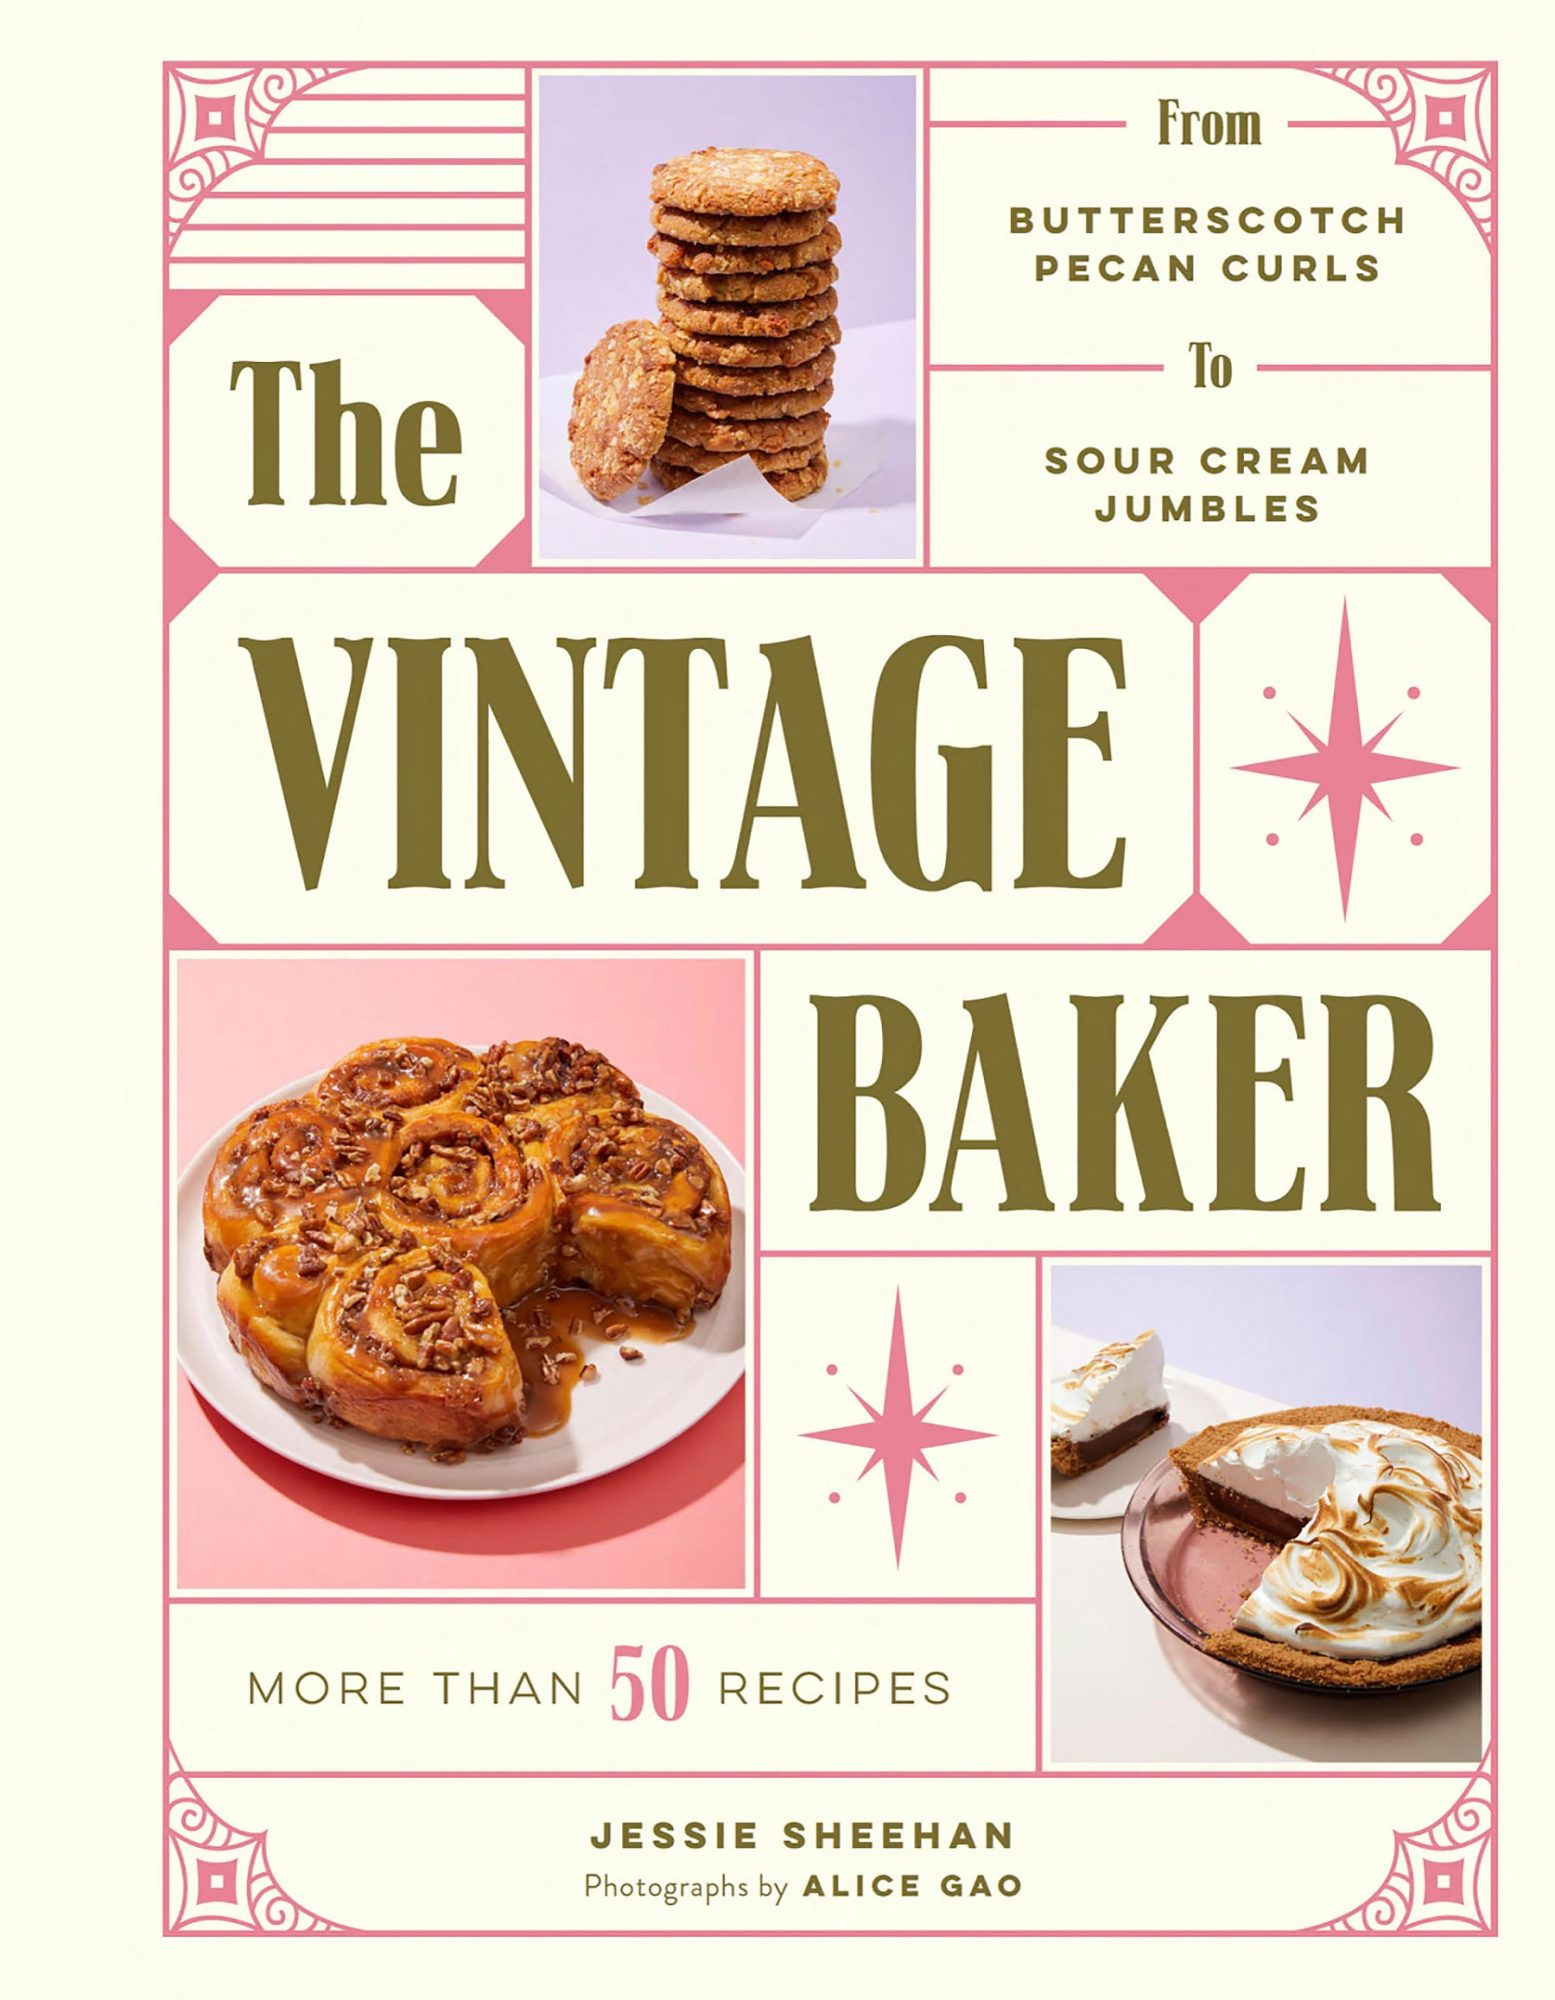 The Vintage Baker, by Jessie Sheehan